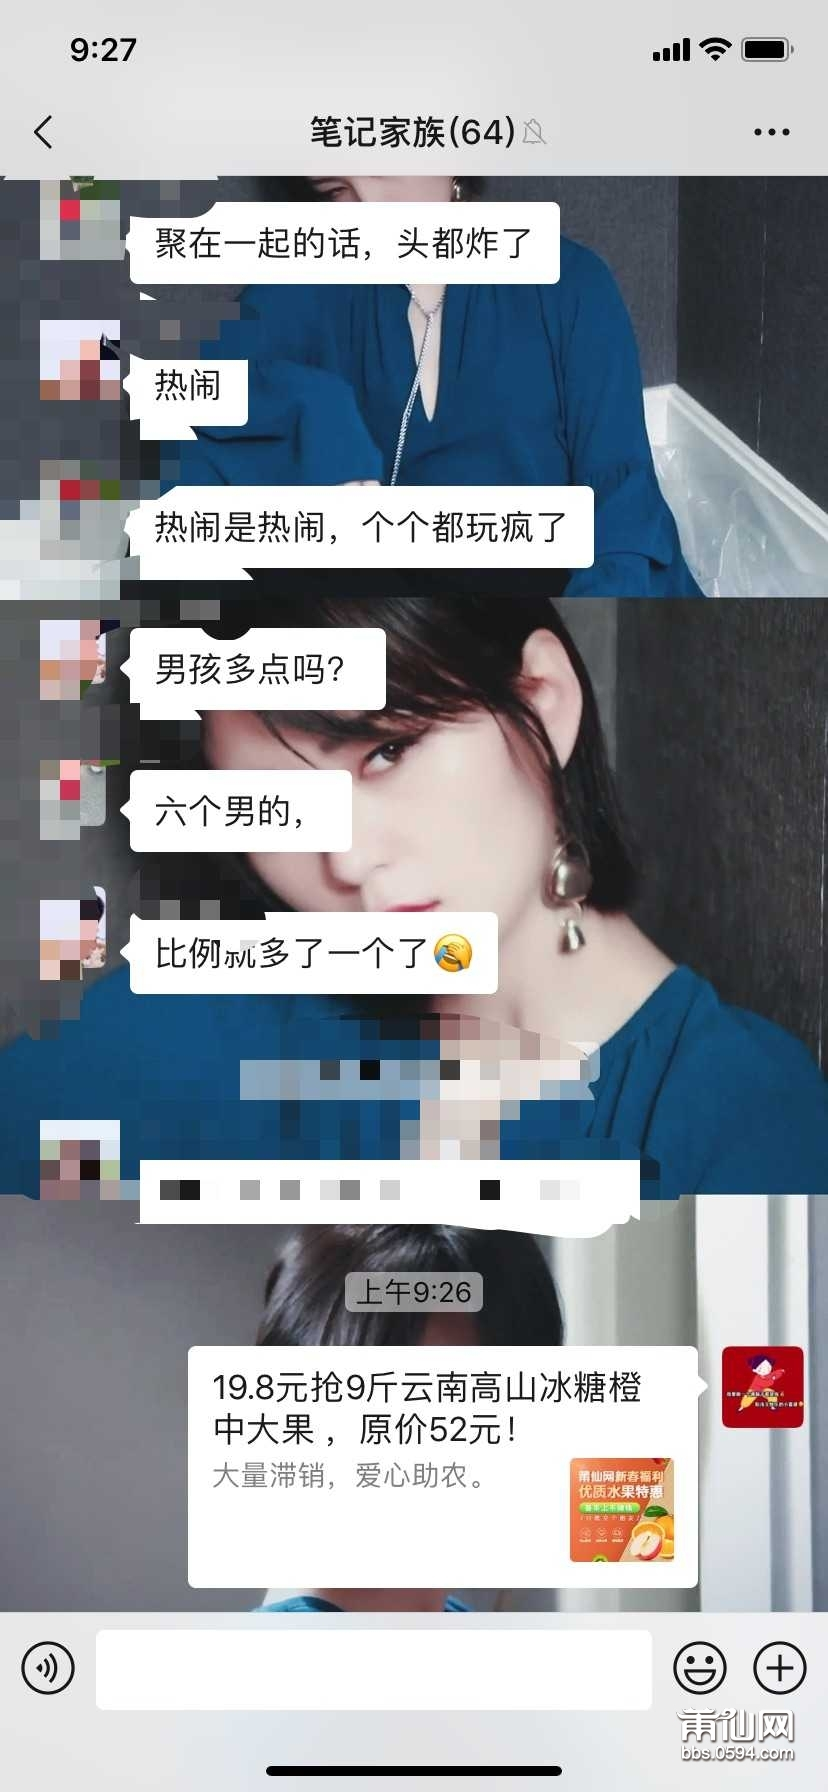 wechat_upload16099829405ff663dc8bee1